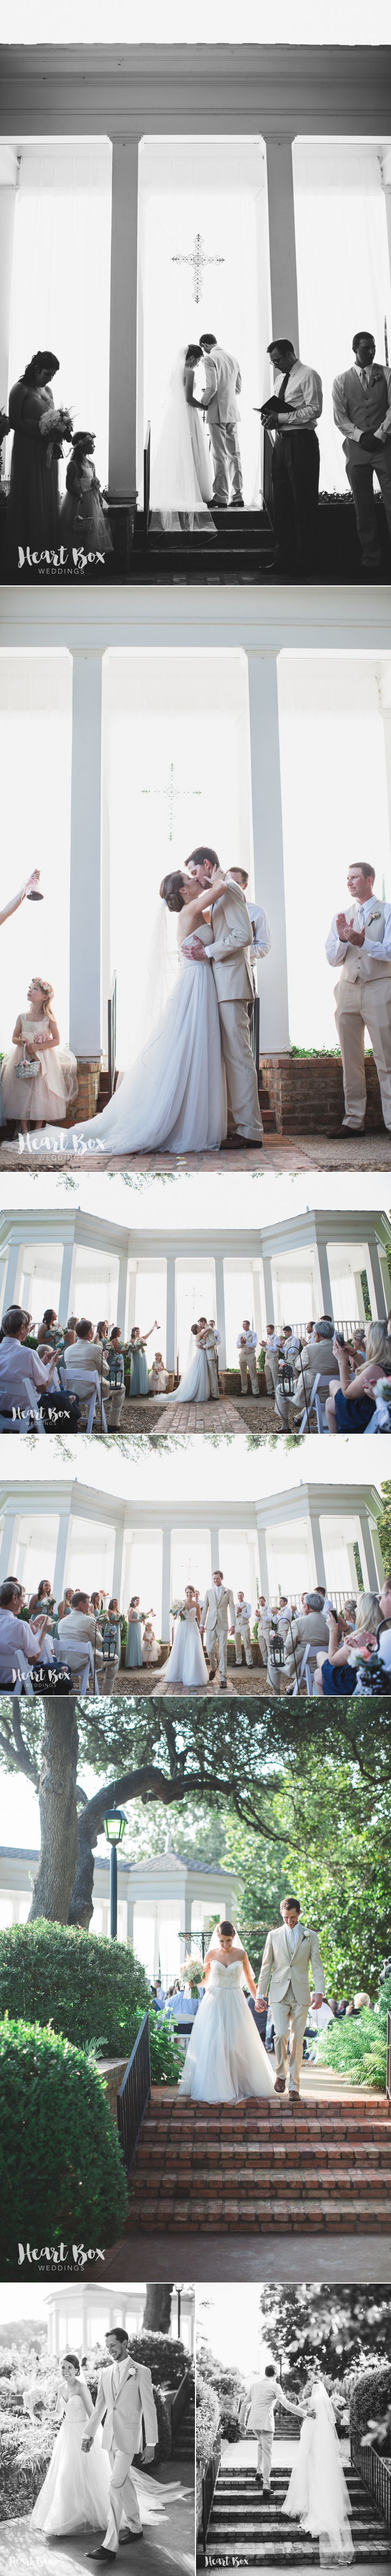 Glaser Wedding Blog Collages 14.jpg